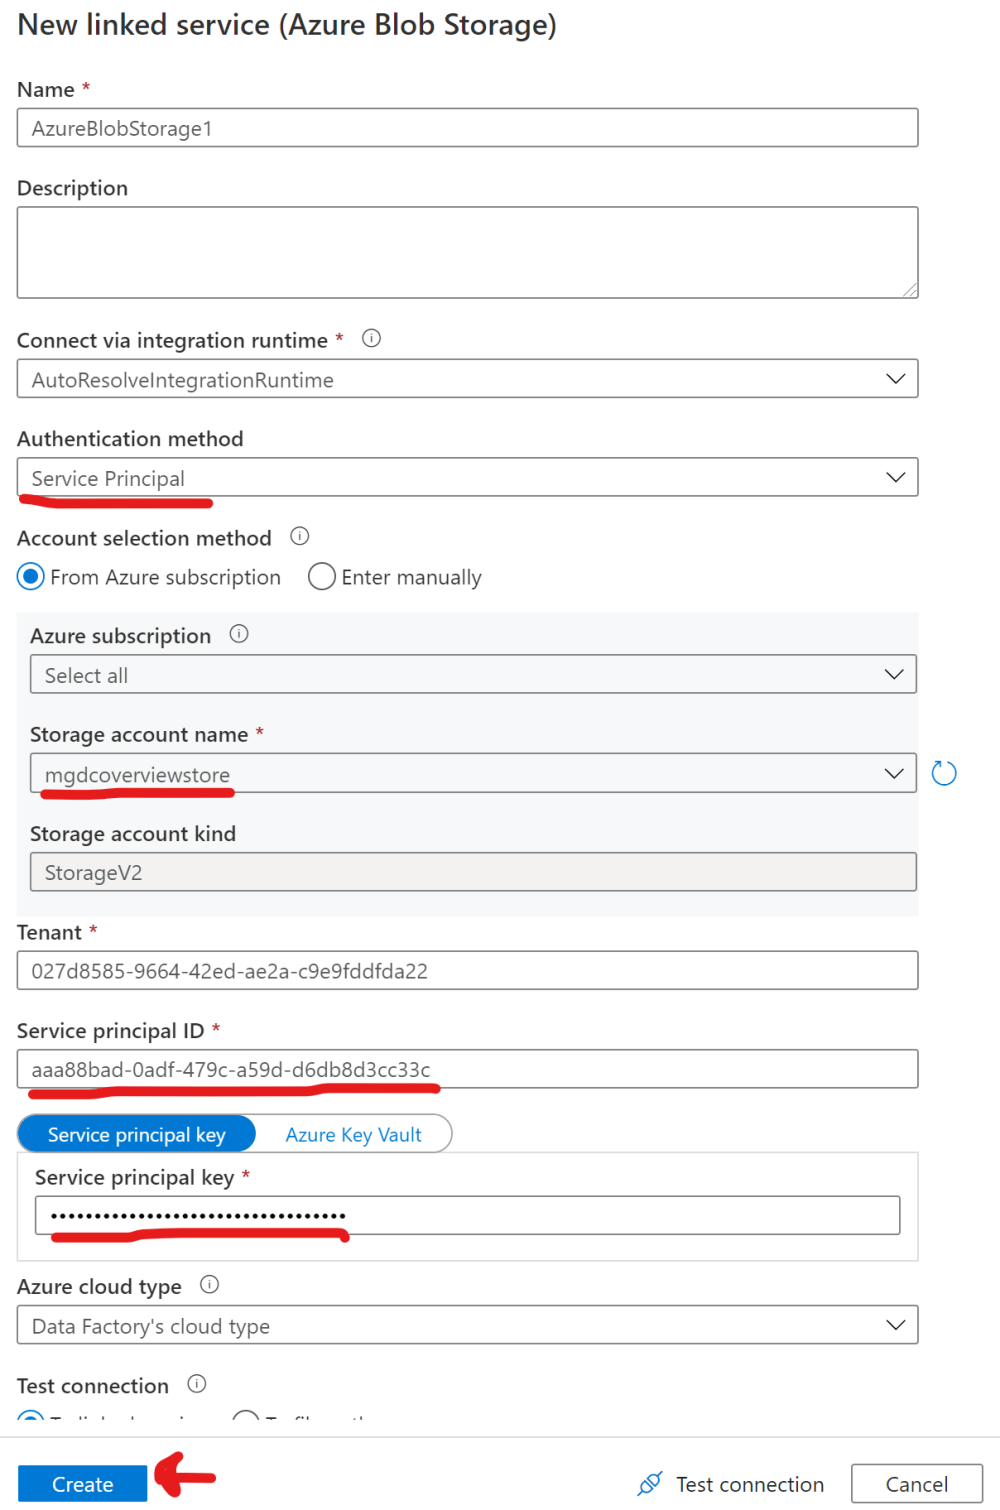 Create a Sink Linked service in Azure Data Factory using a Service Principal